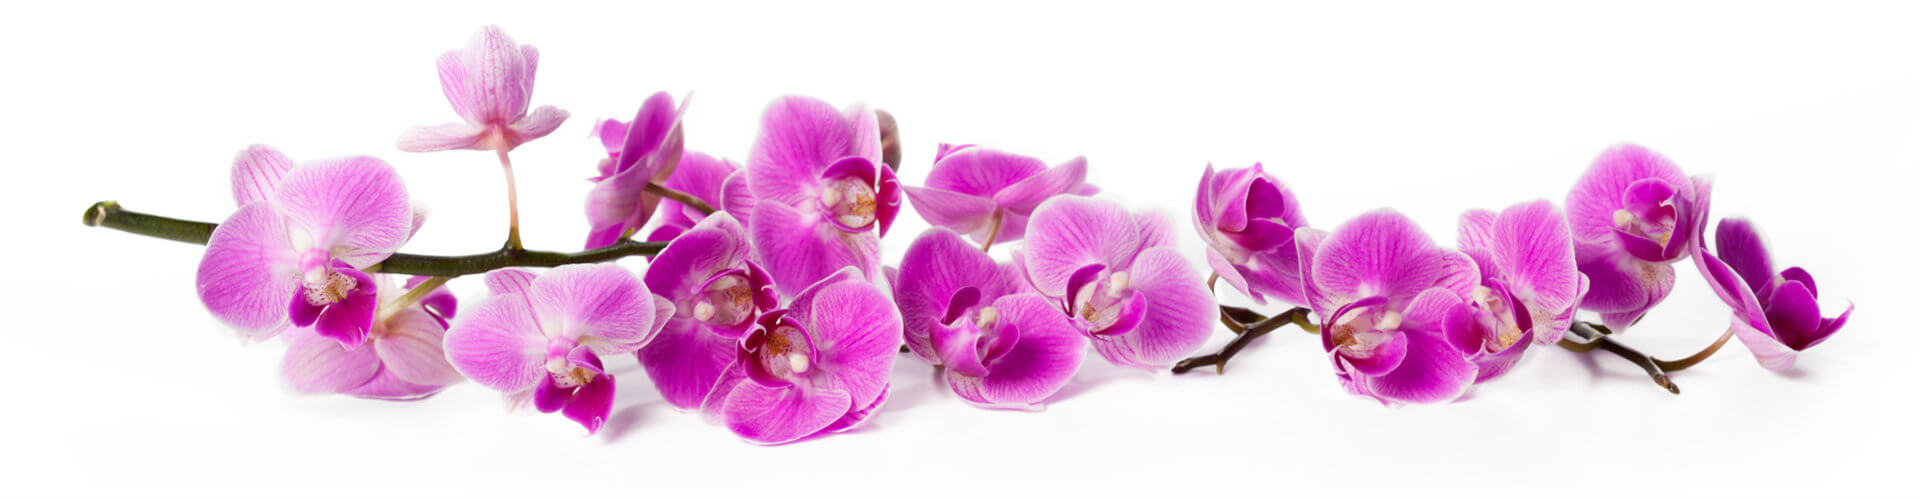 Acupuncture of Iowa Iowa City white orchid background